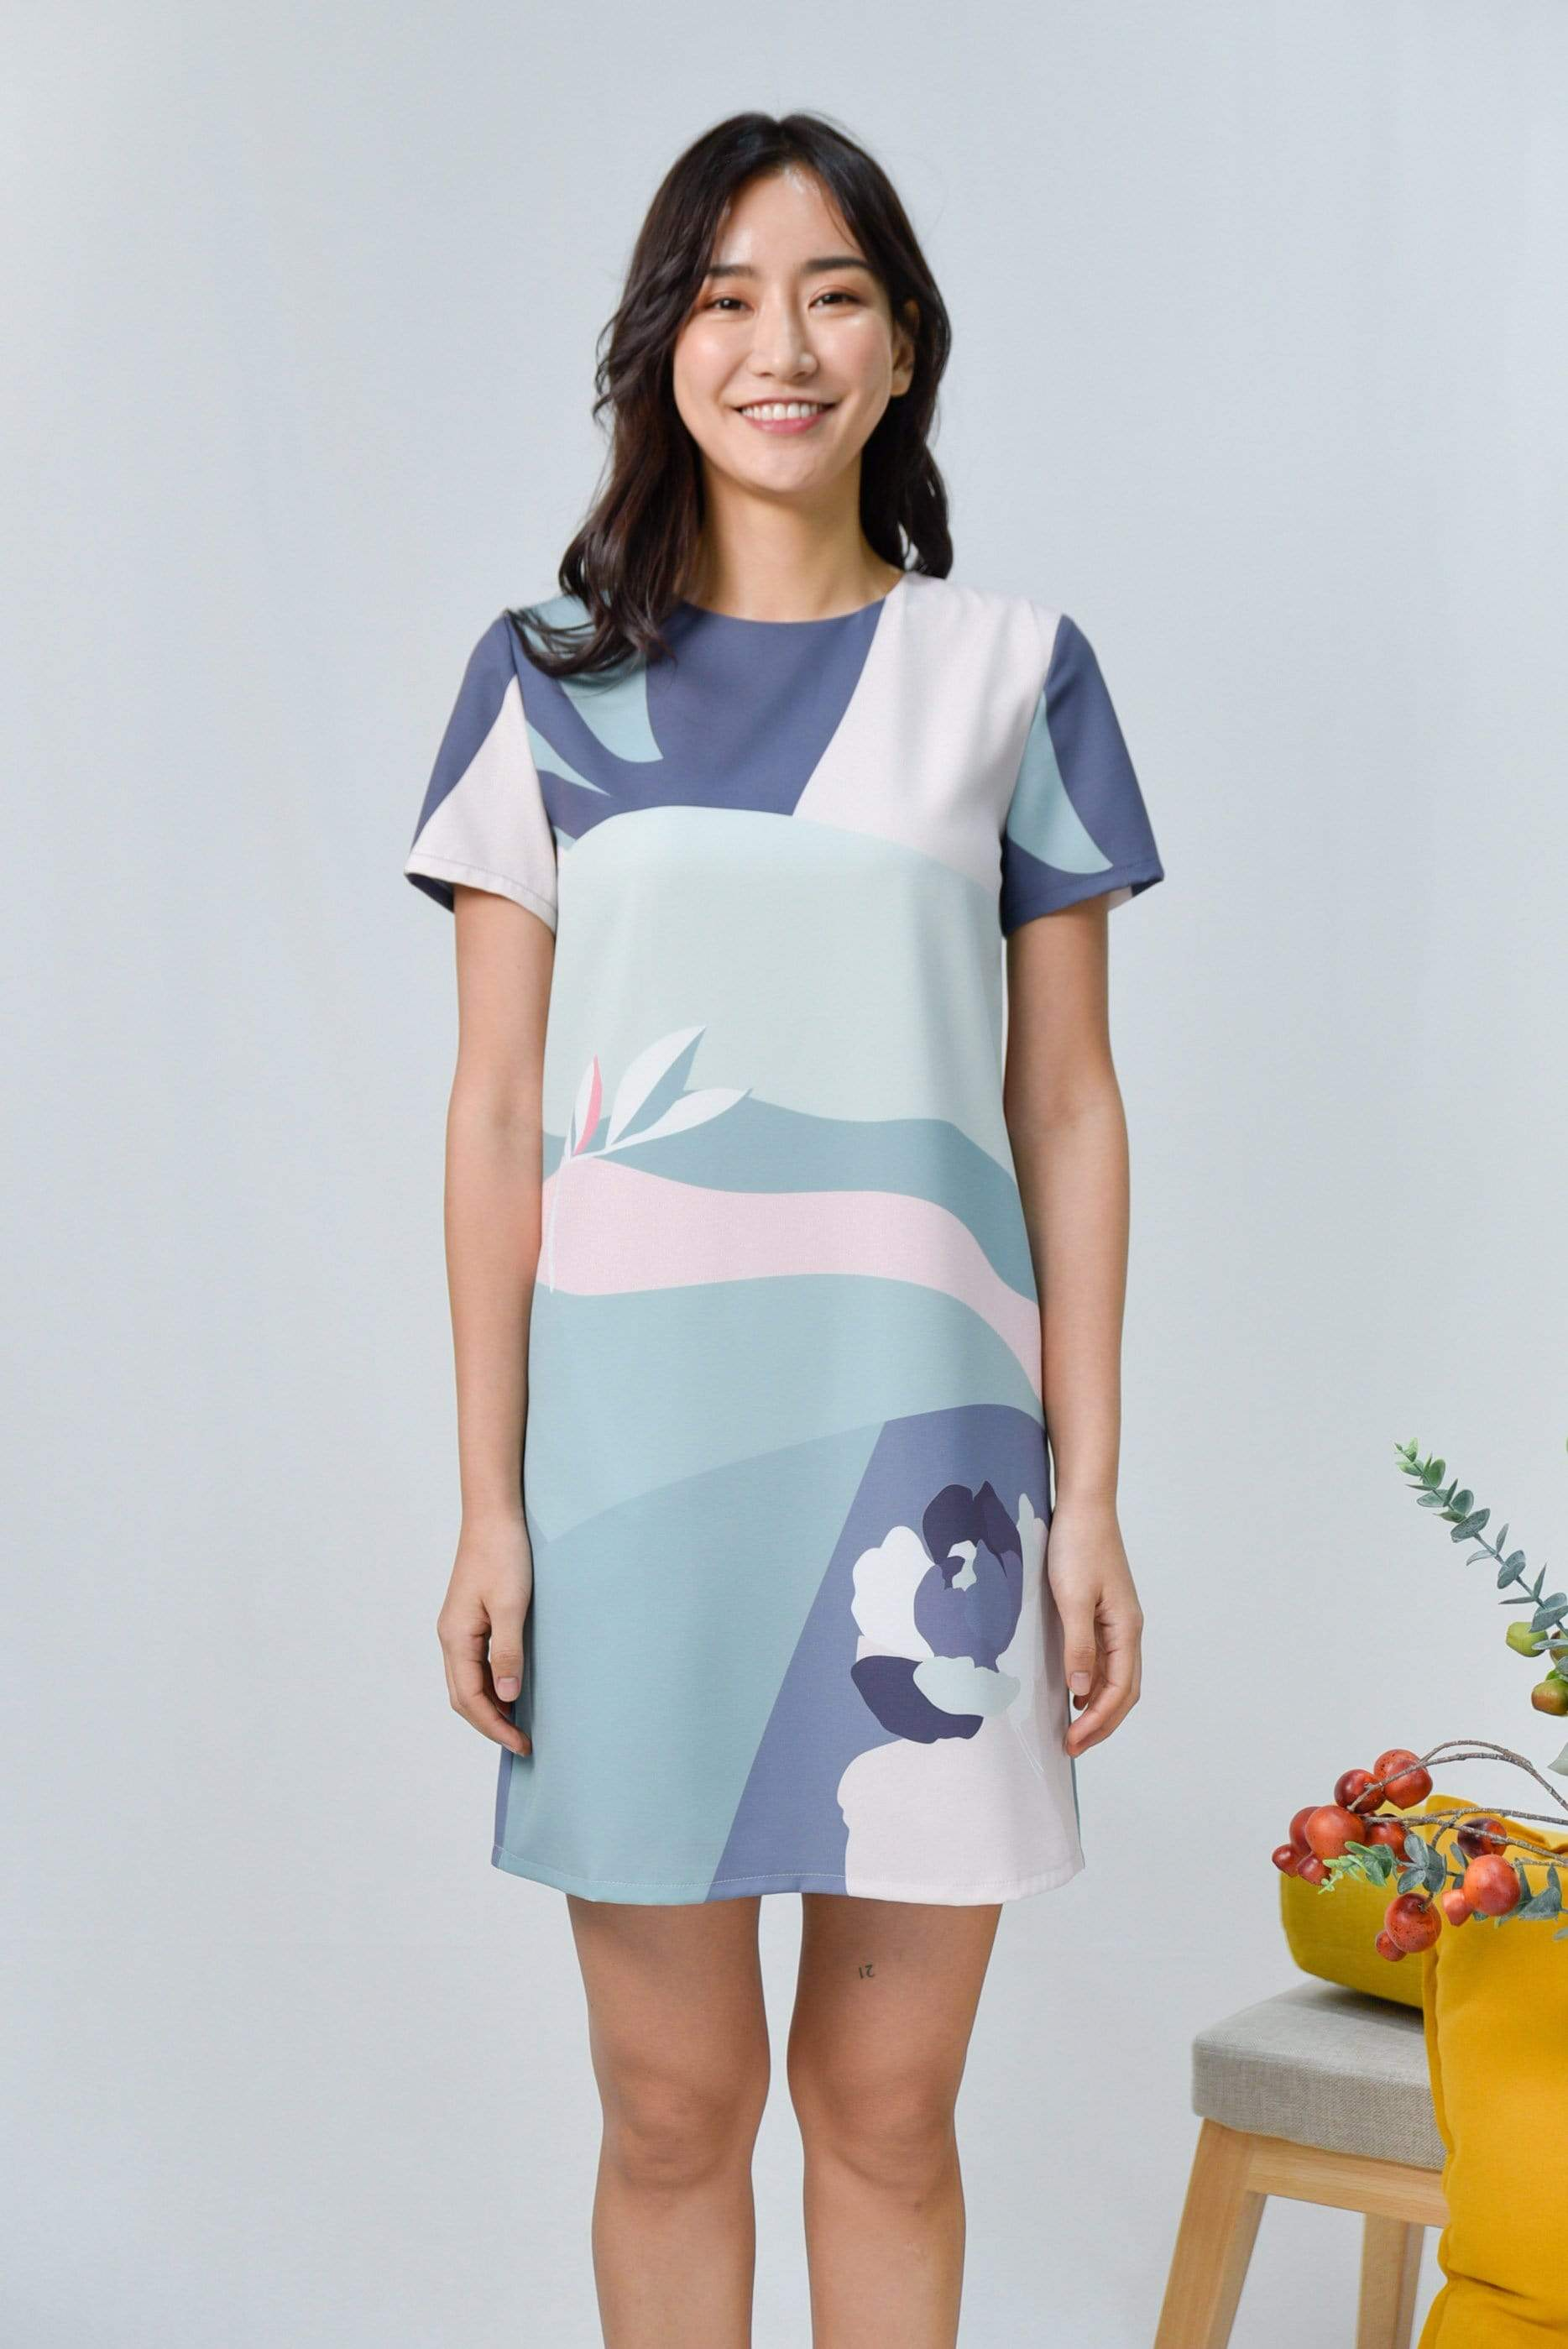 AWE Dresses HORIZON SLEEVED SHIFT DRESS IN DUSK